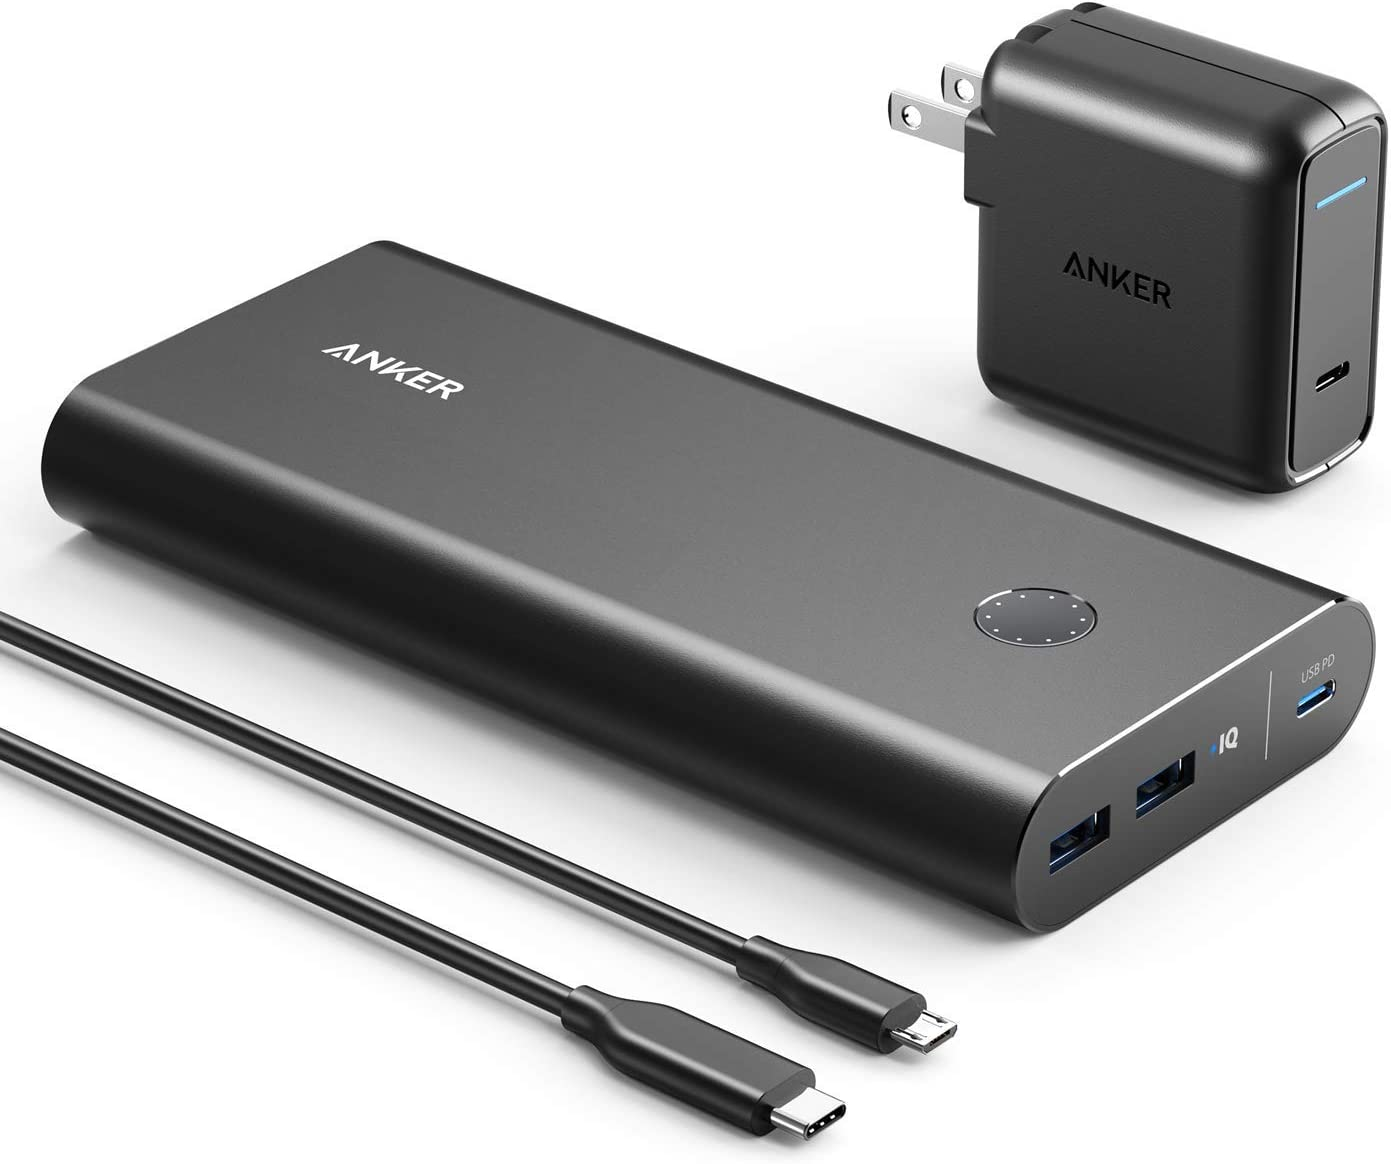 Anker PowerCore+ 26800 PD with 30W Power Delivery Charger, Portable Charger Bundle for MacBook Air, iPhone XS Max / X , and USB Type-C Laptops with Power Delivery (Renewed)